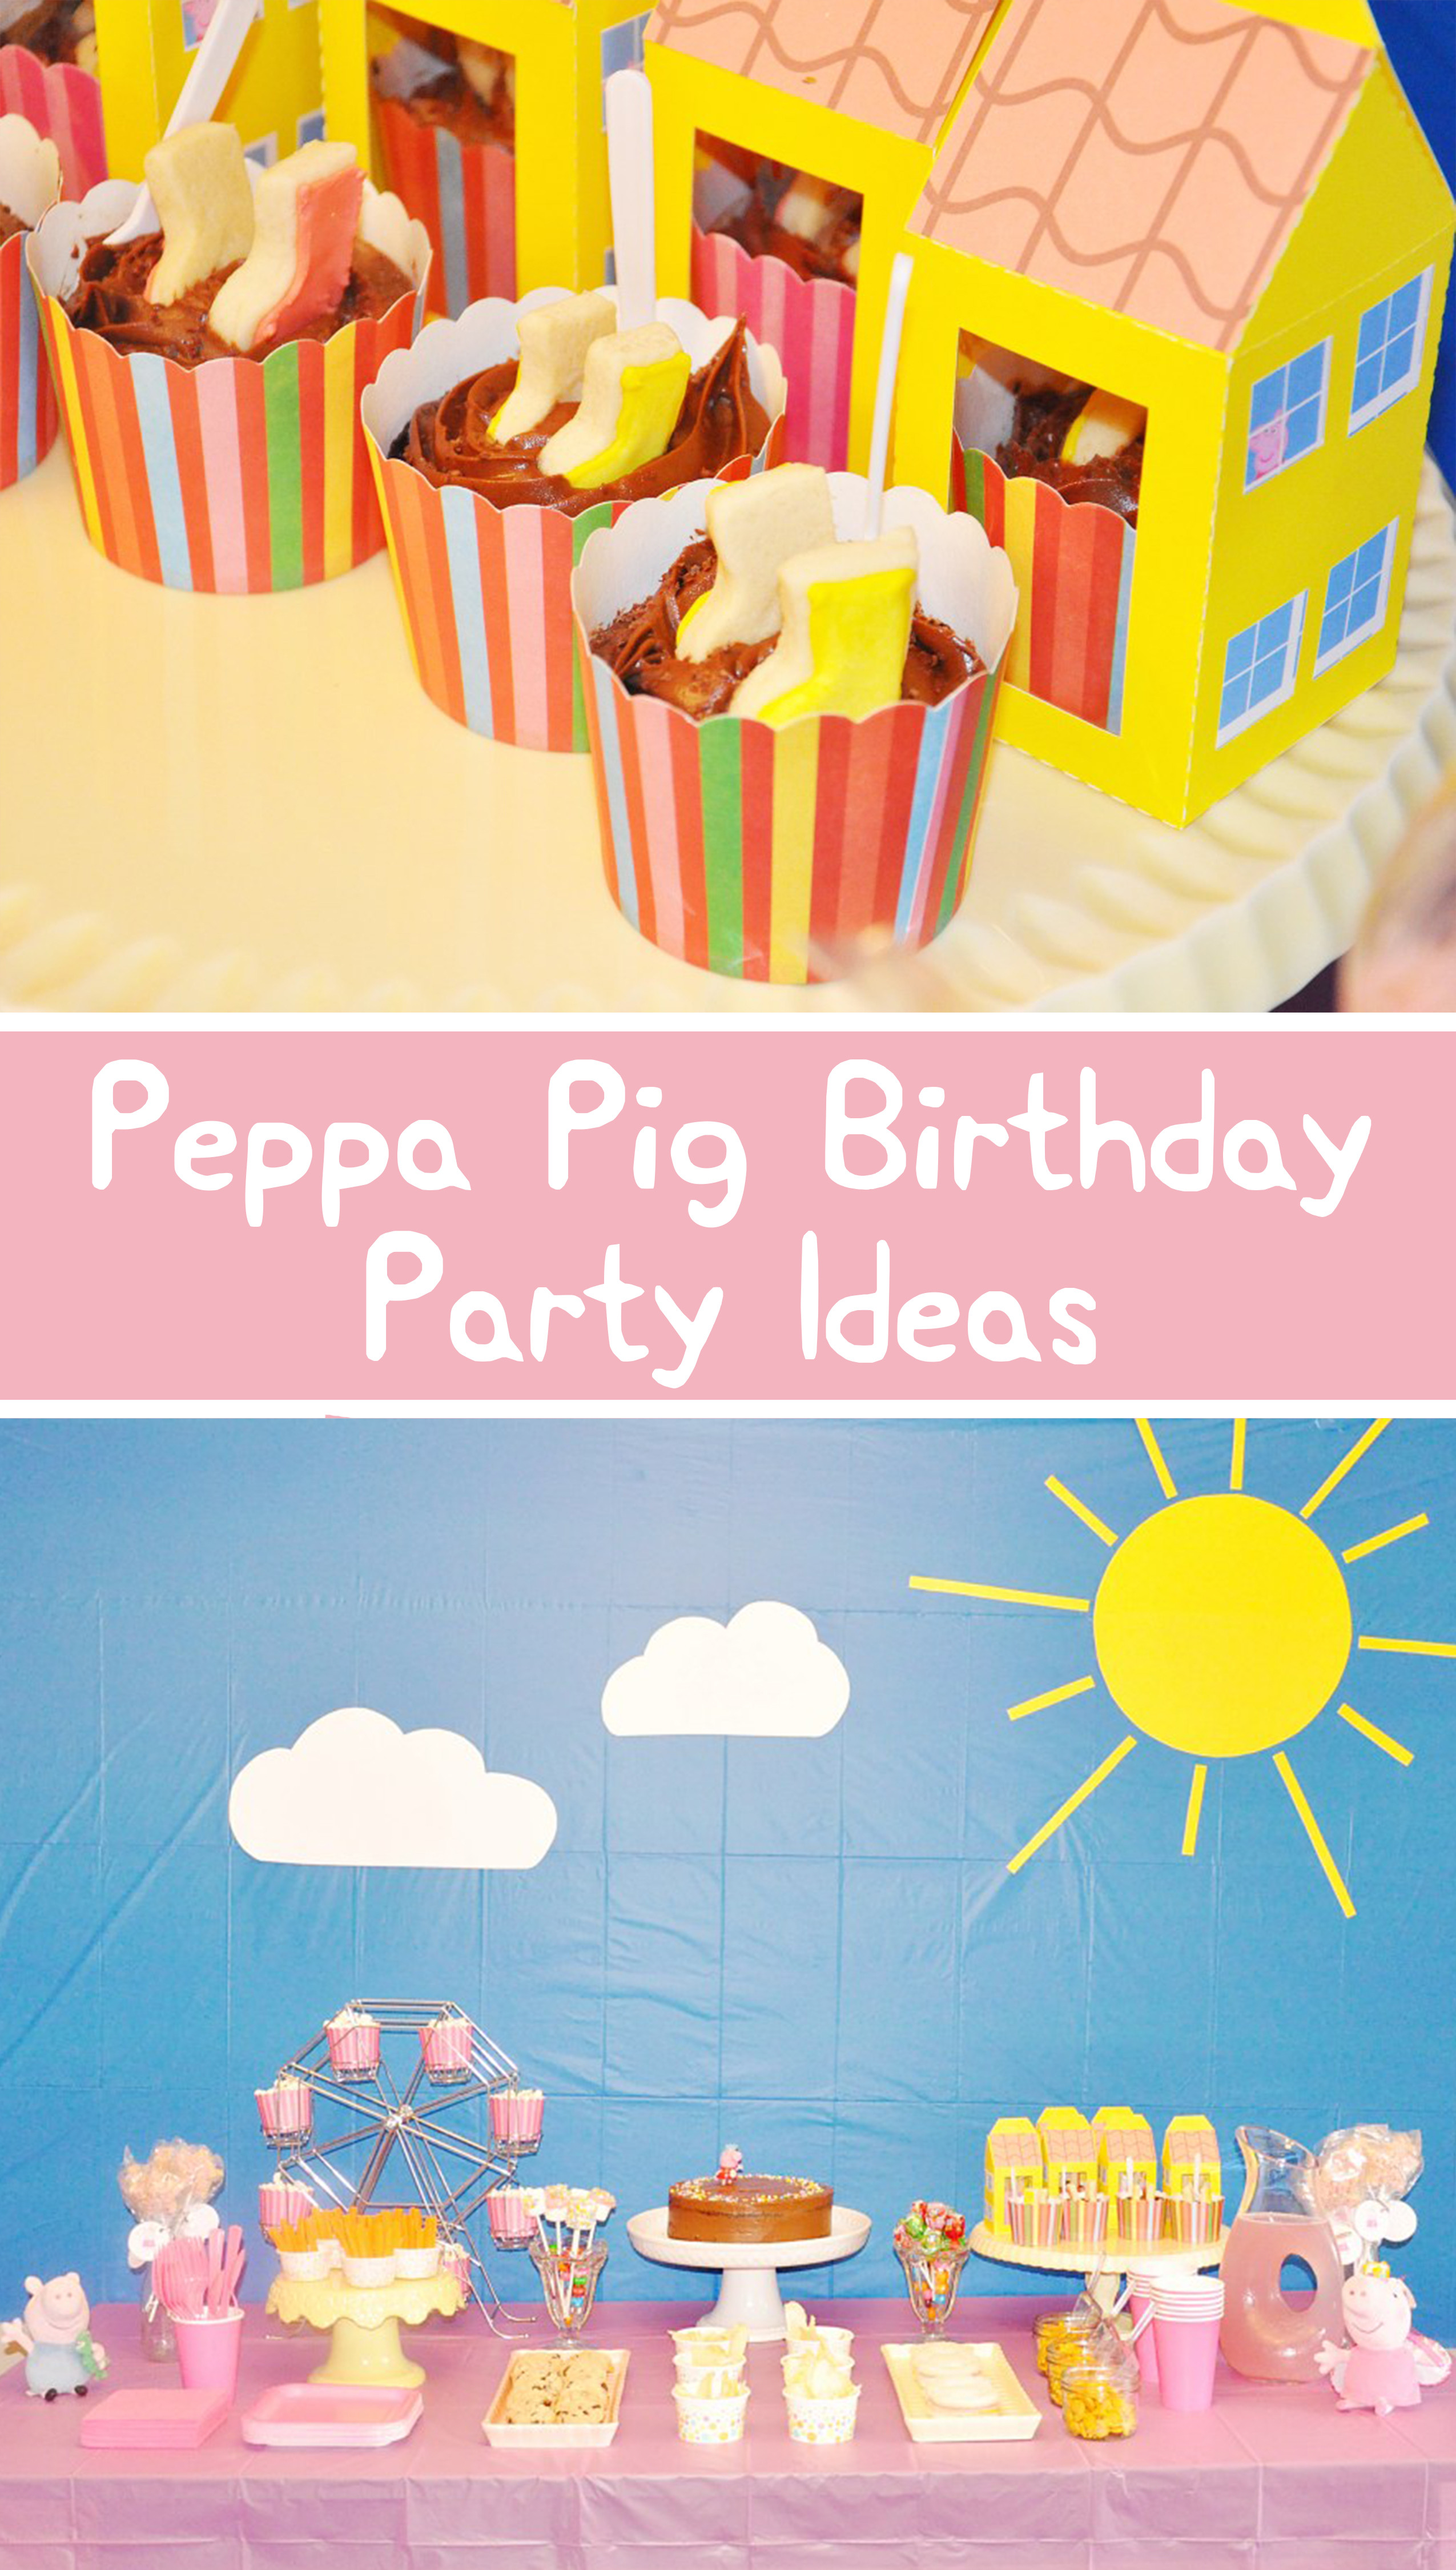 Best ideas about Peppa Pig Birthday Decorations . Save or Pin Peppa Pig Birthday Party Simple DIY Ideas & Free Now.